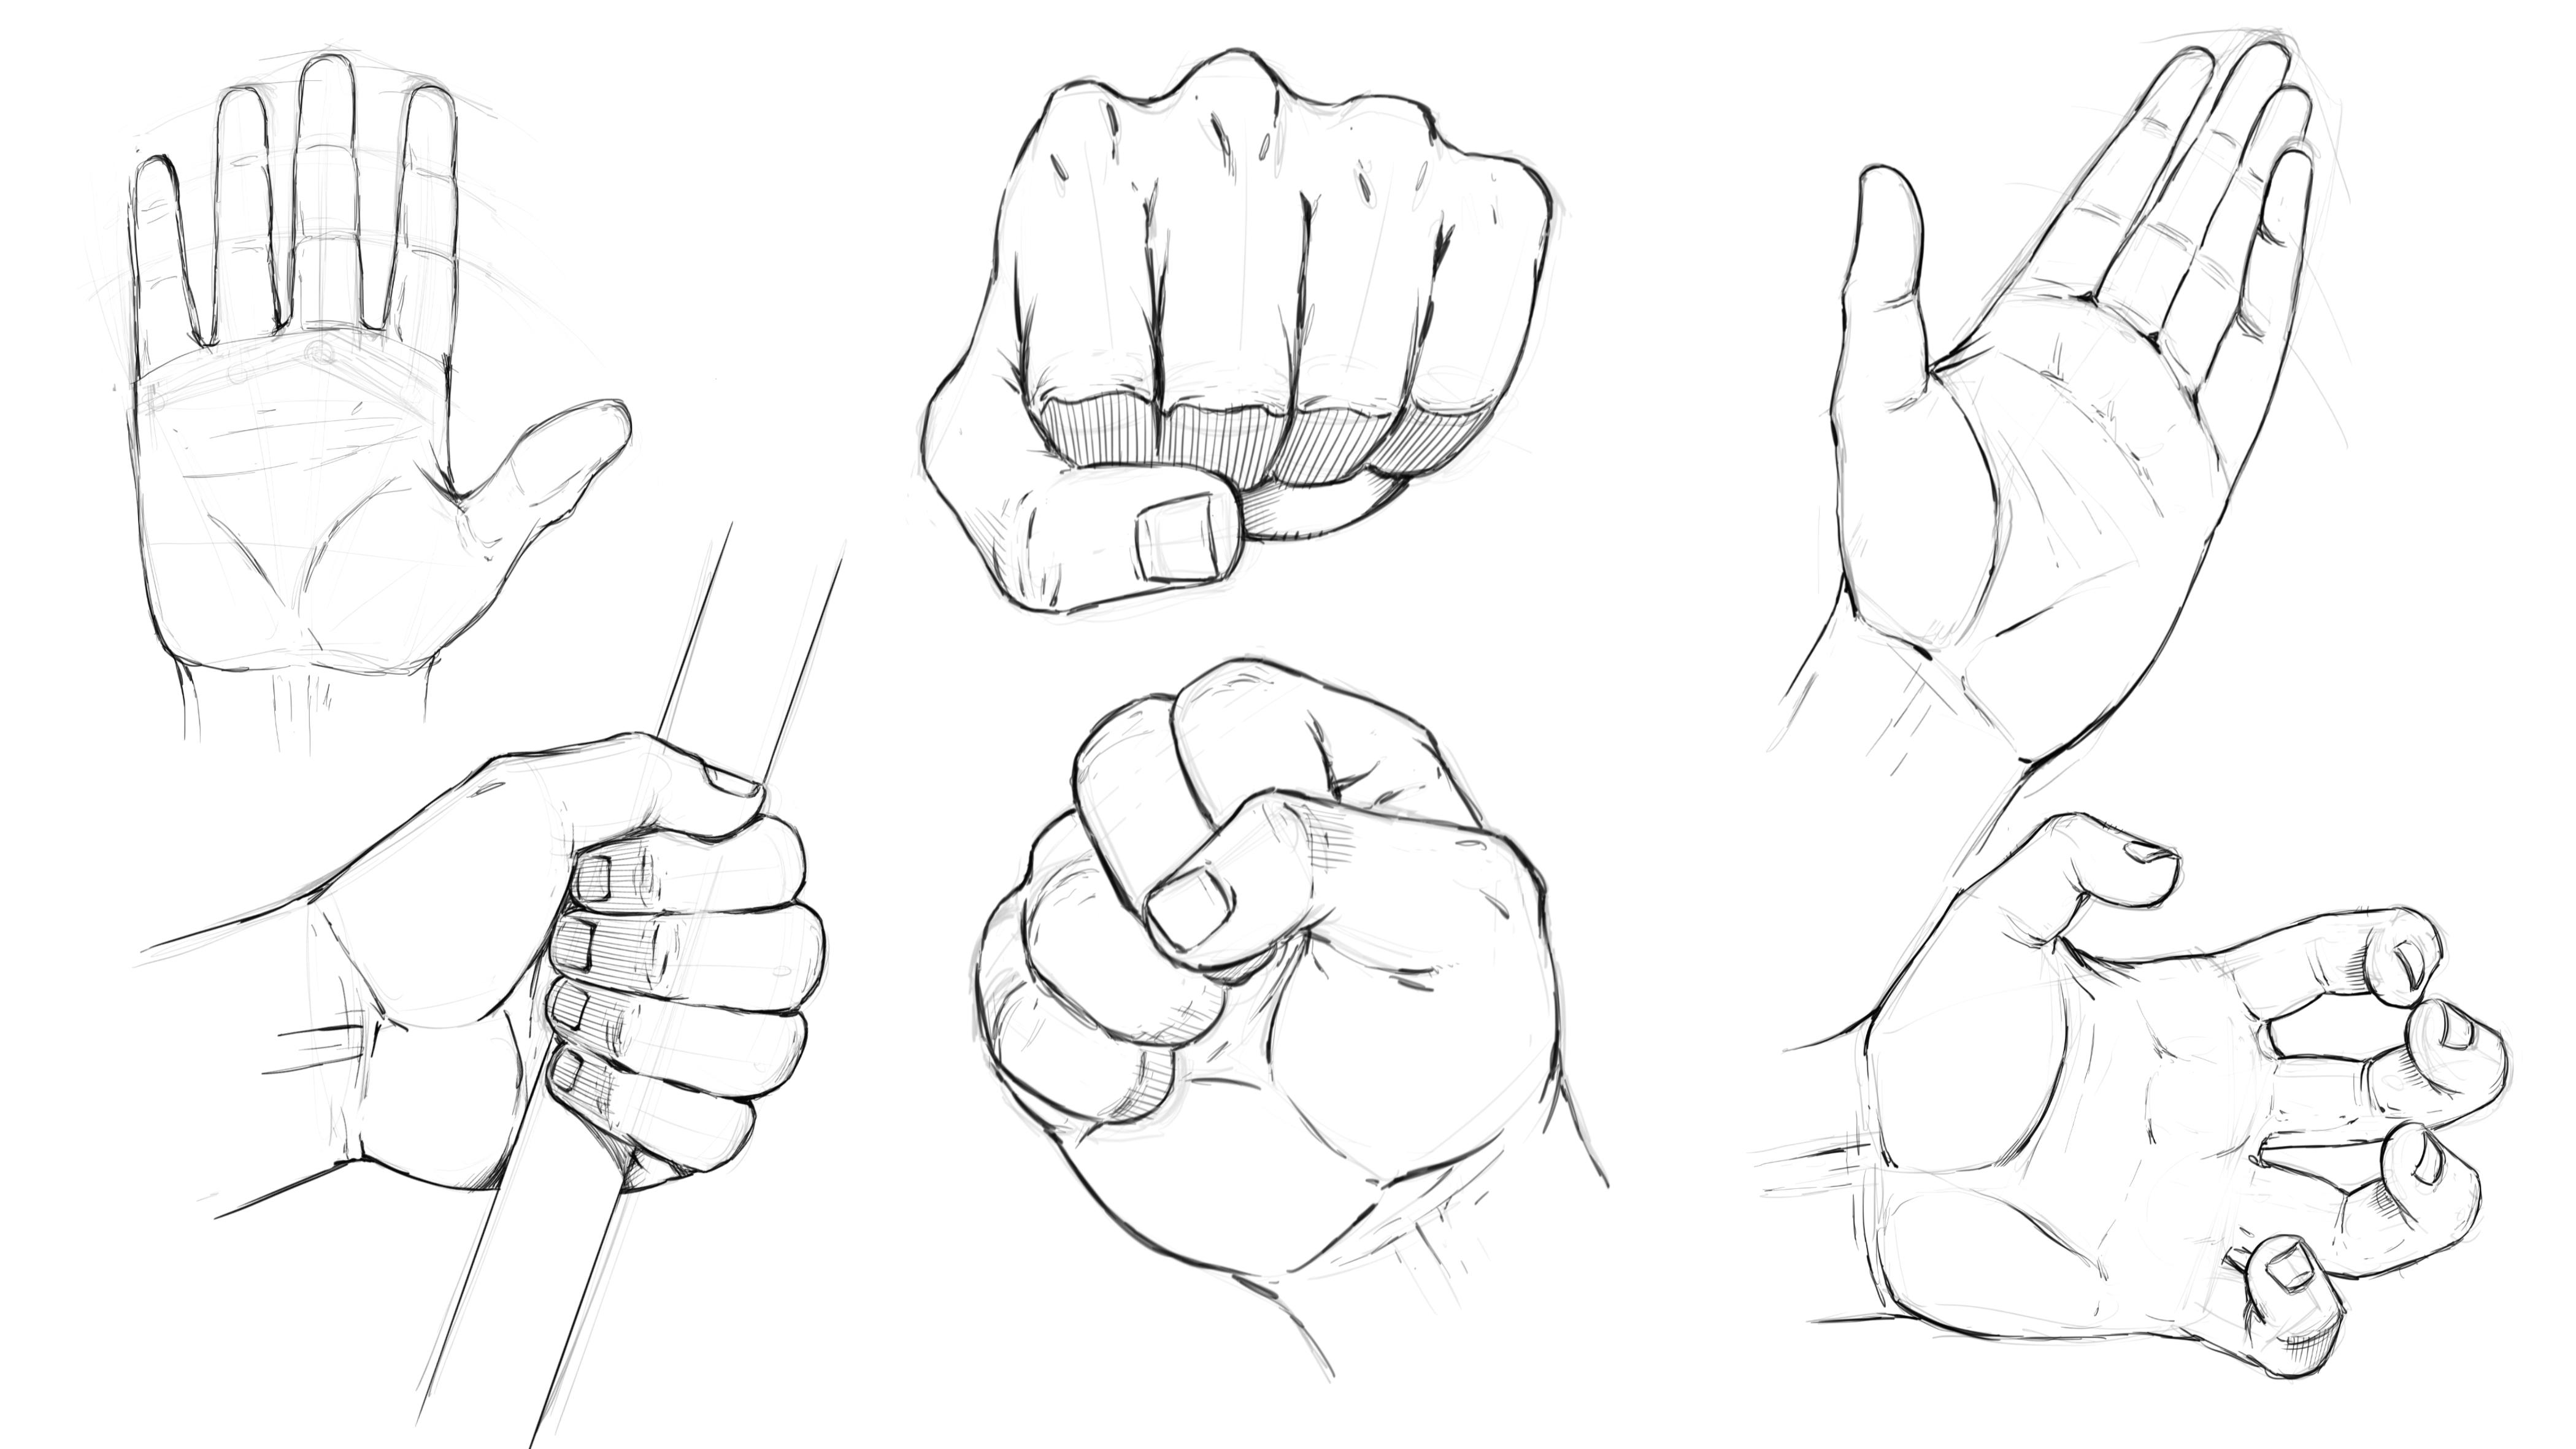 How to Draw a Hand advise